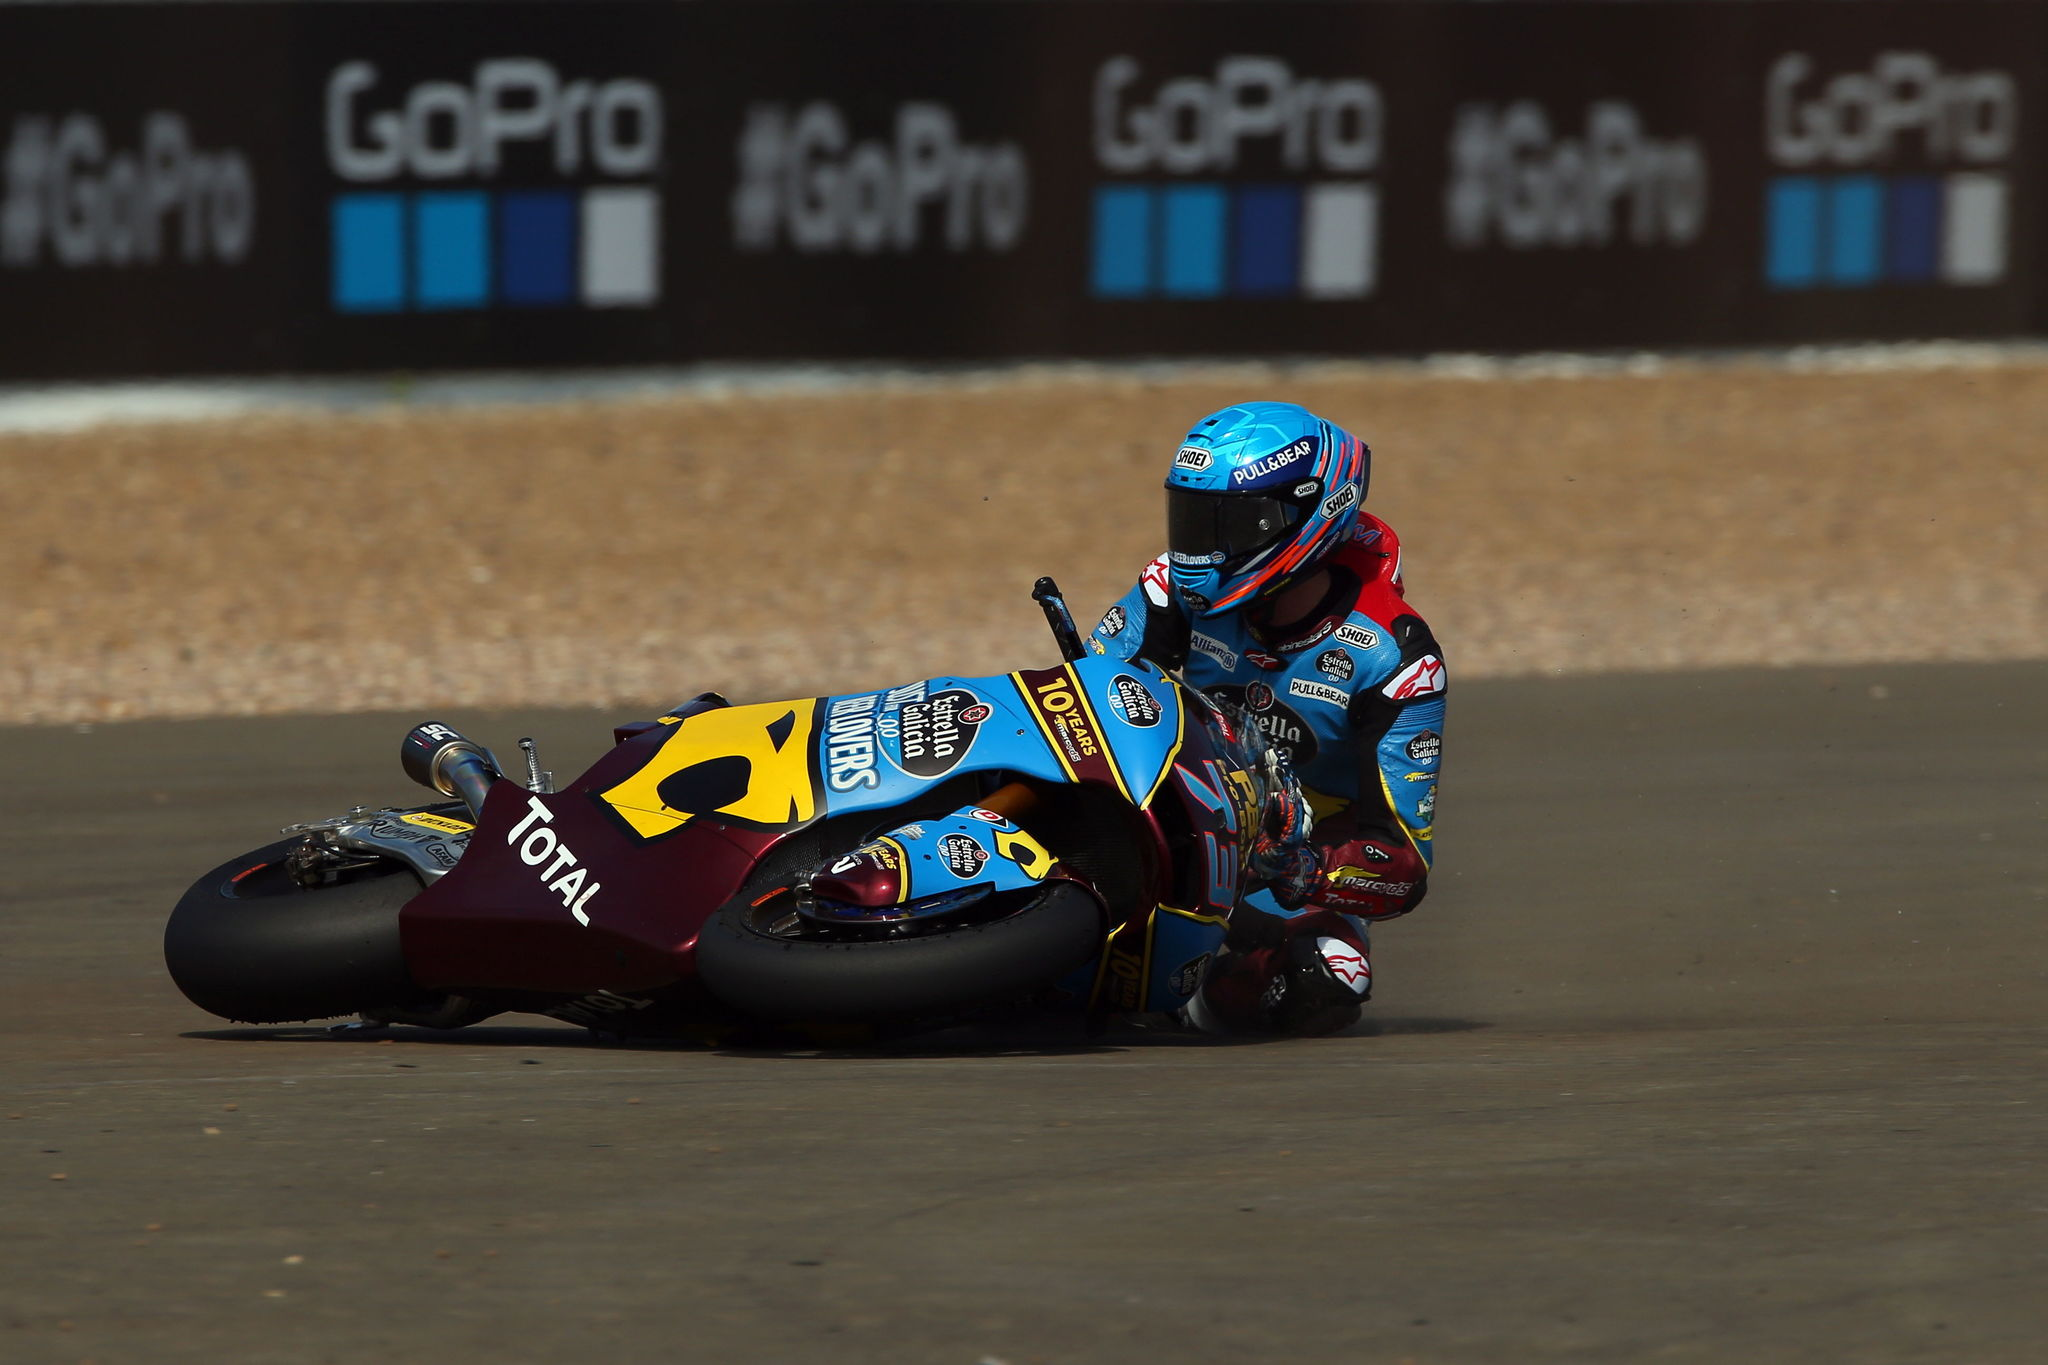 Northampton (United Kingdom), 25/08/2019.- Spanish Moto2 rider <HIT>Alex</HIT><HIT>Marquez</HIT> of the EG 0,0 Marc VDS Team crashes during the Moto2 race of the 2019 Motorcycling Grand Prix of Britain at the Silverstone race track, Northampton, Britain, 25 August 2019. (Motociclismo, Ciclismo, Reino Unido) EFE/EPA/TIM KEETON